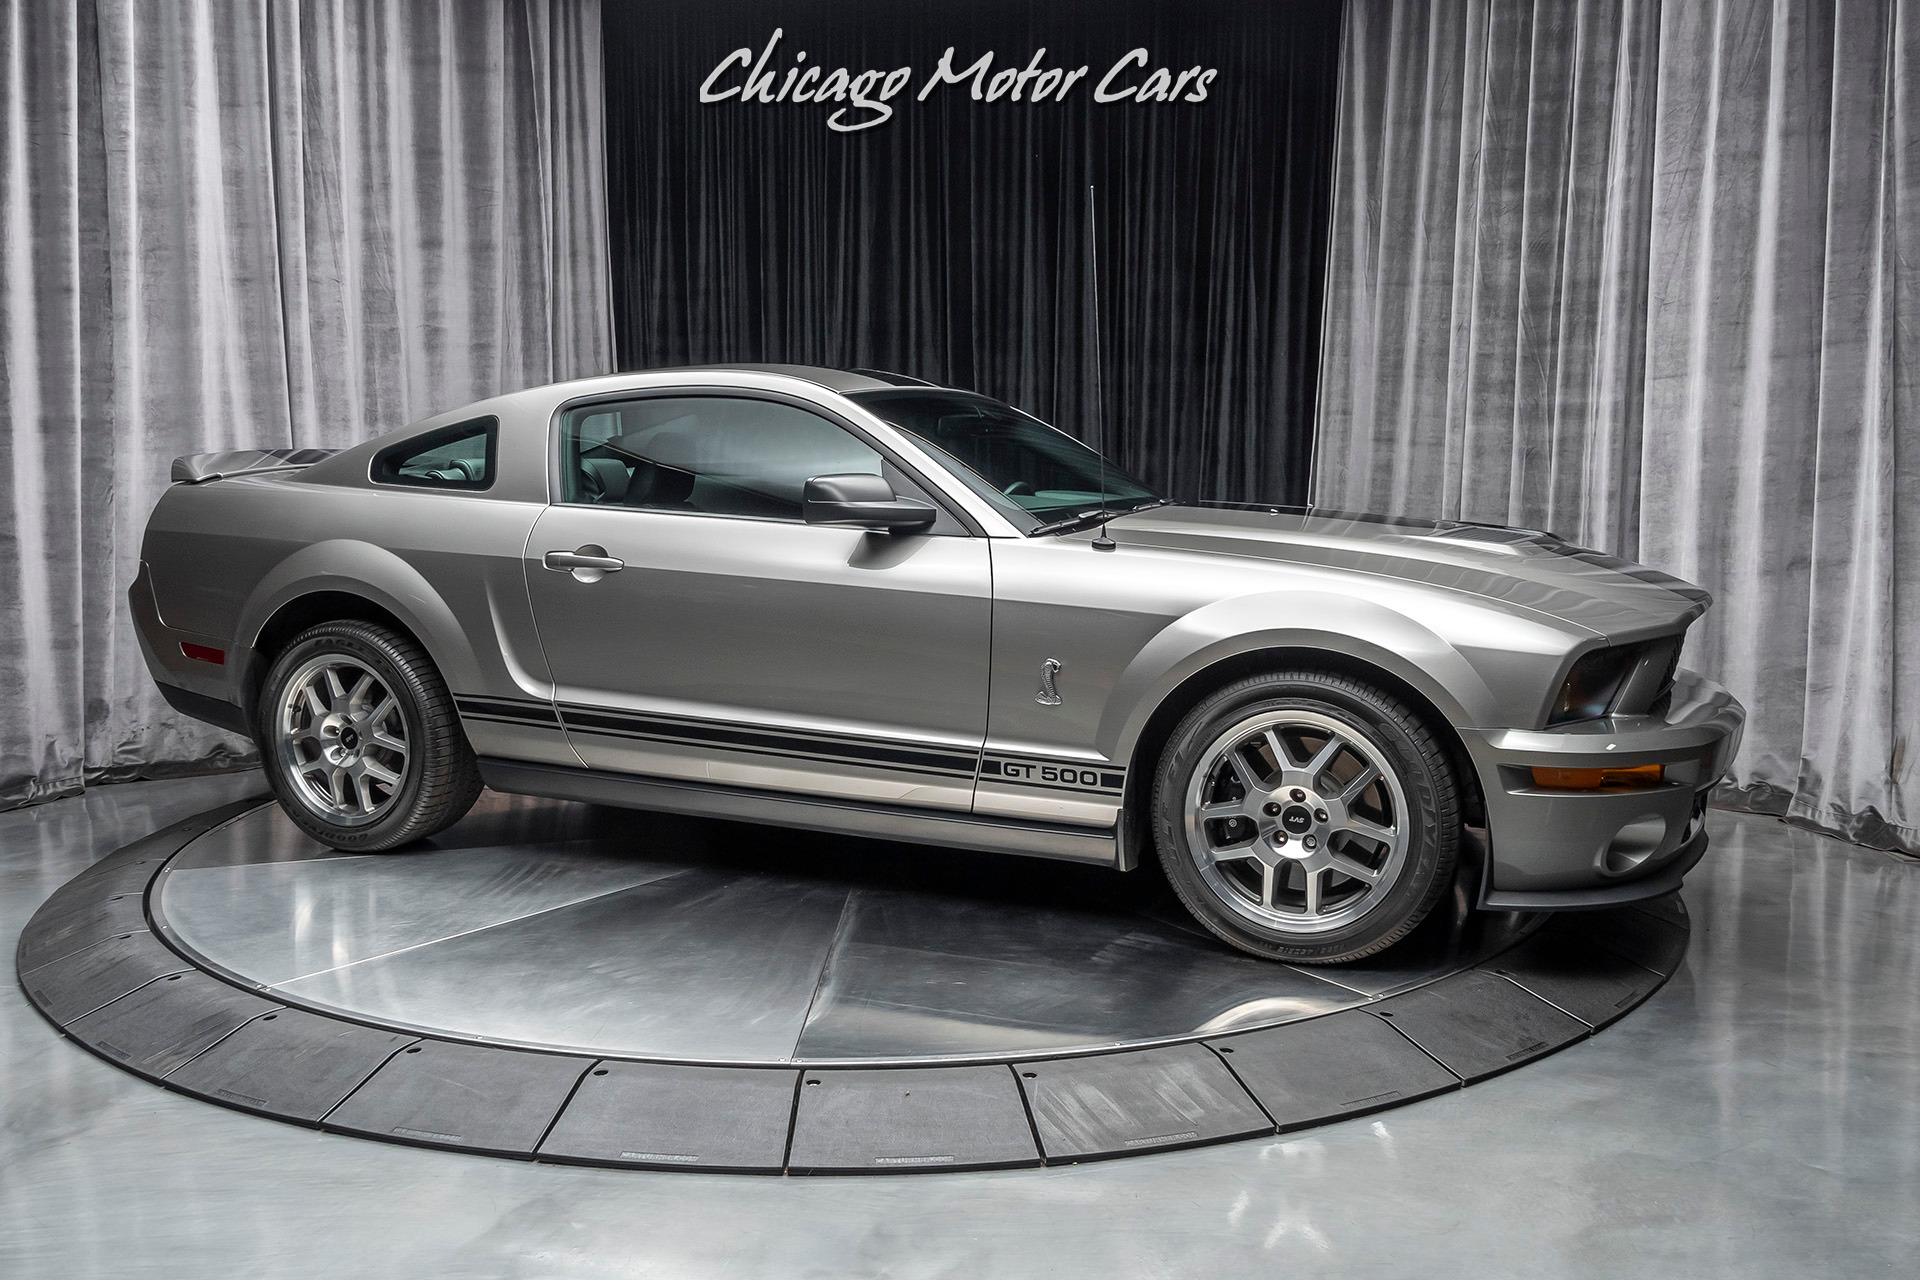 Used-2008-Ford-Shelby-GT500-Coupe-ONLY-5800-MILES-SVT-POWER-UPGRADE-EXHAUST